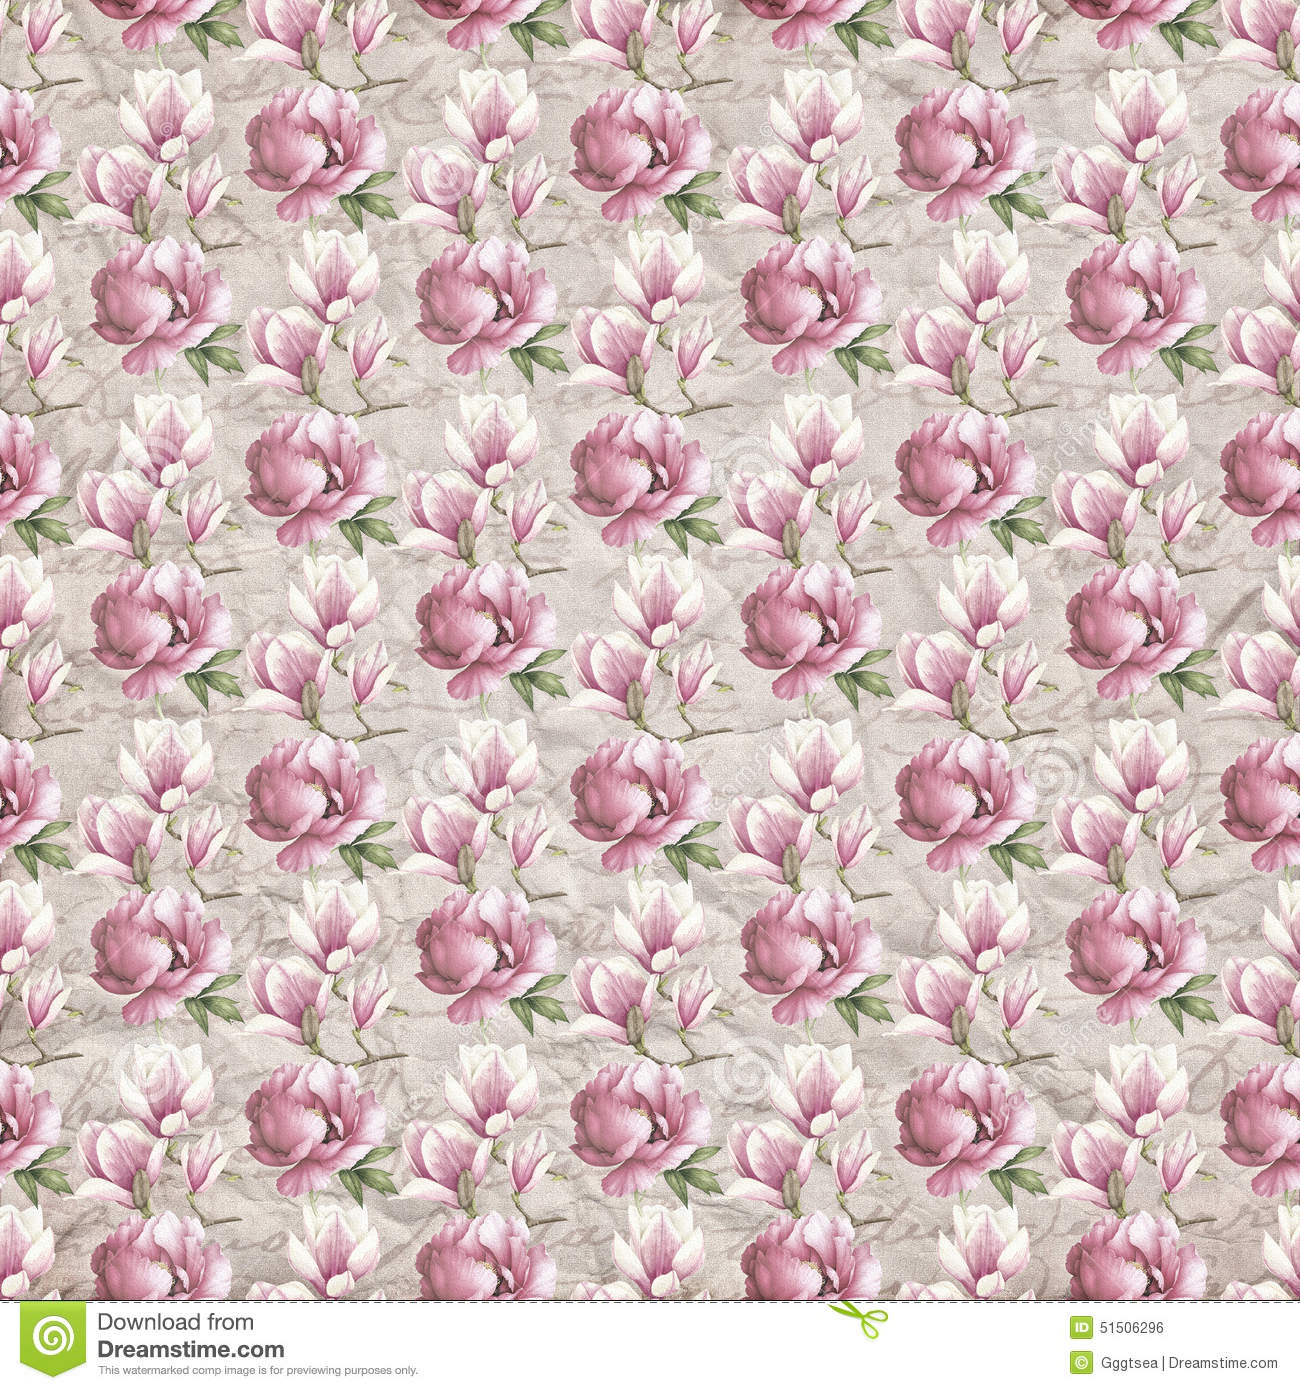 Old Flower Paper Wallpaper Stock Photo Image Of Stylized 51506296